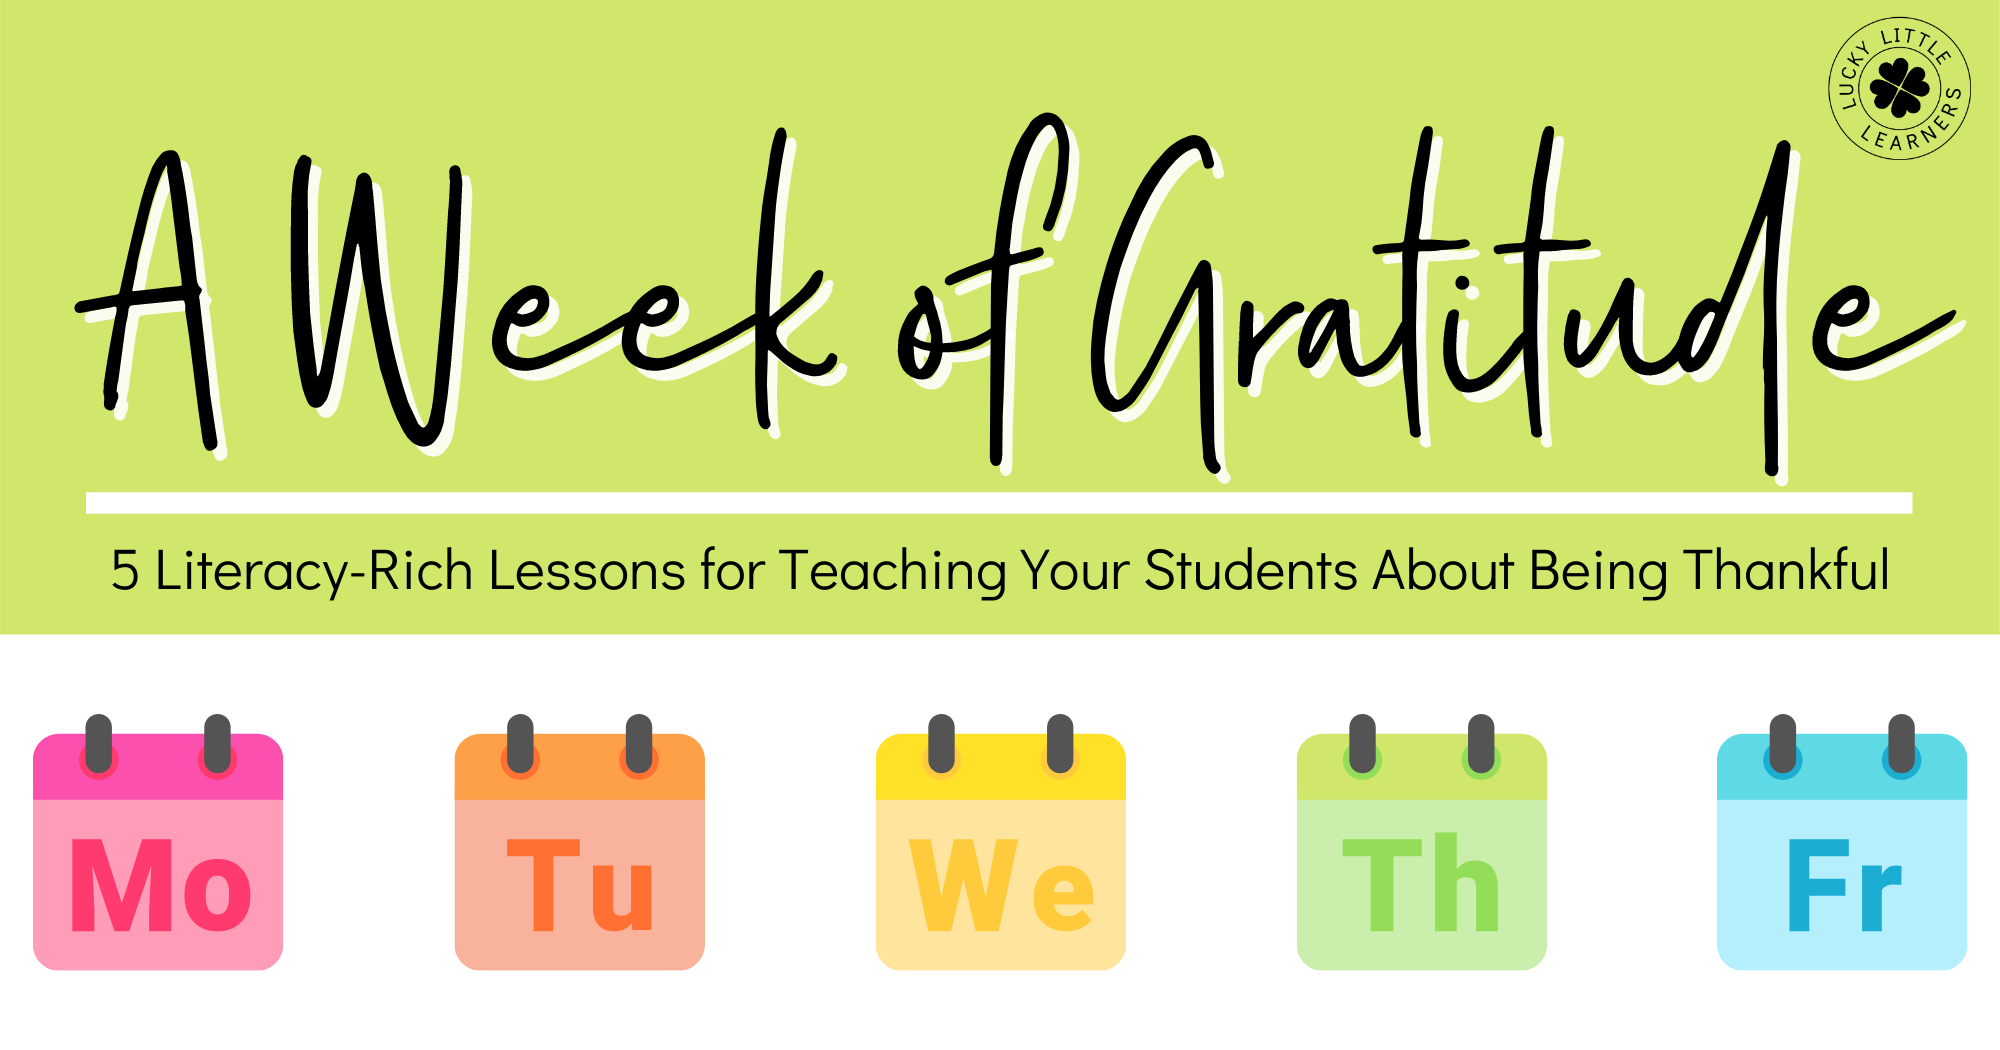 A Week of Gratitude: Five Literacy-Rich Lessons for Teaching Your Students About Being Thankful